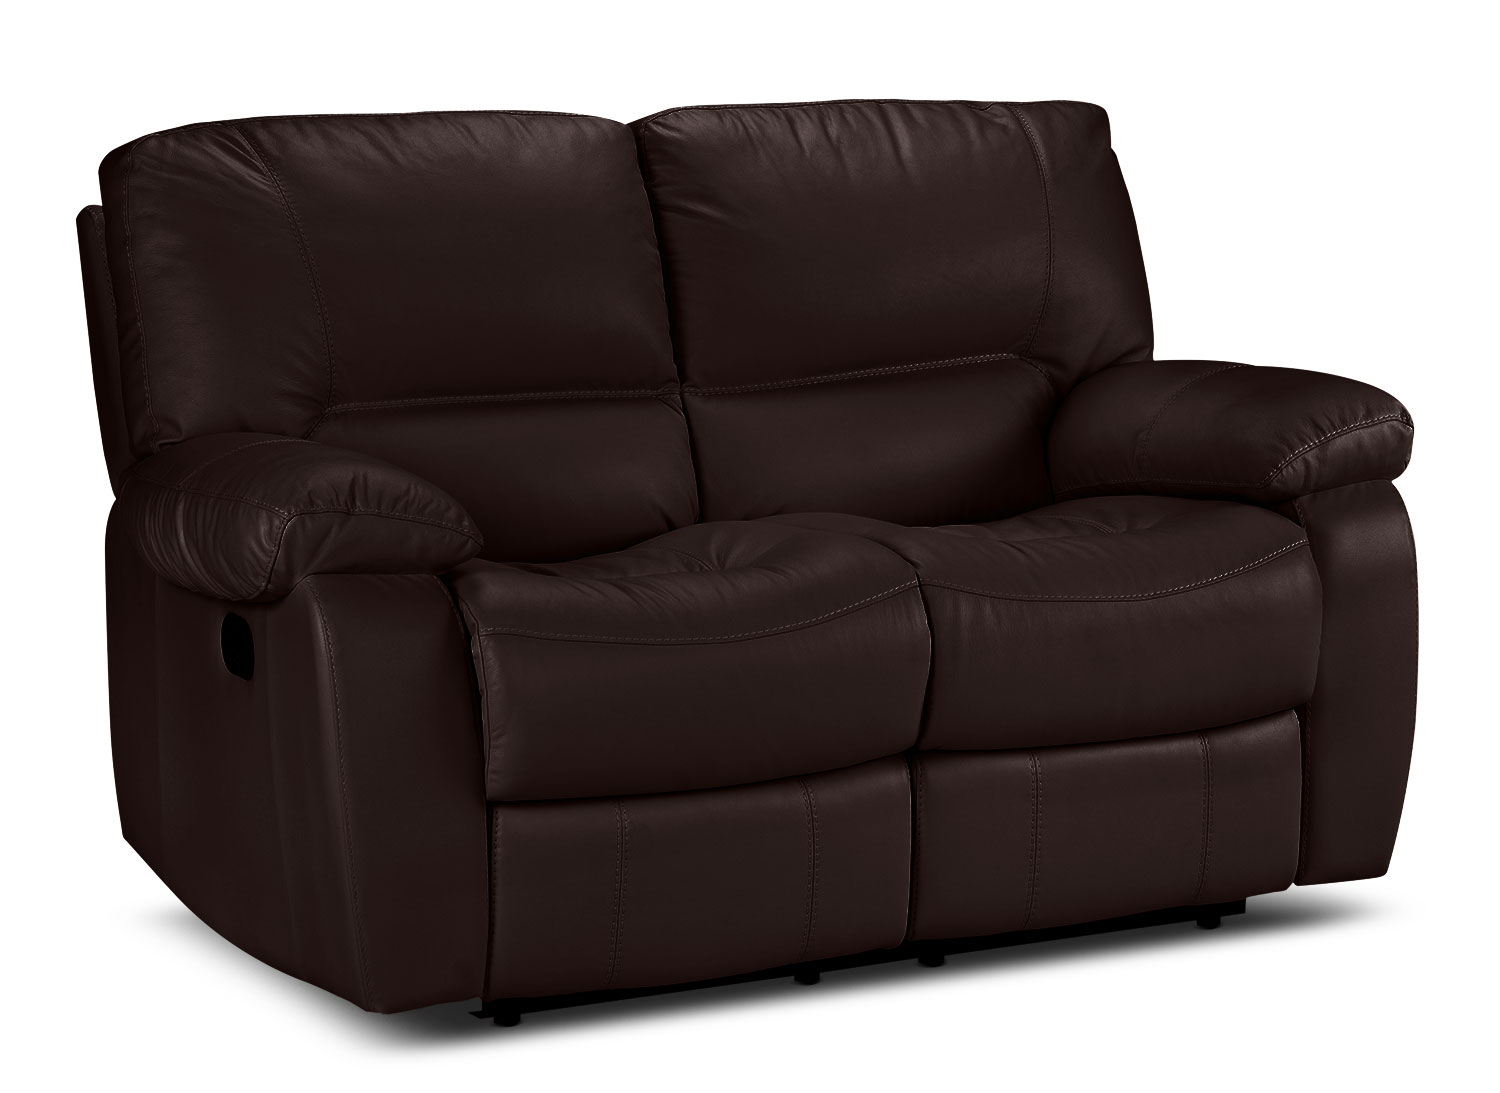 Piermont Reclining Loveseat - Chocolate